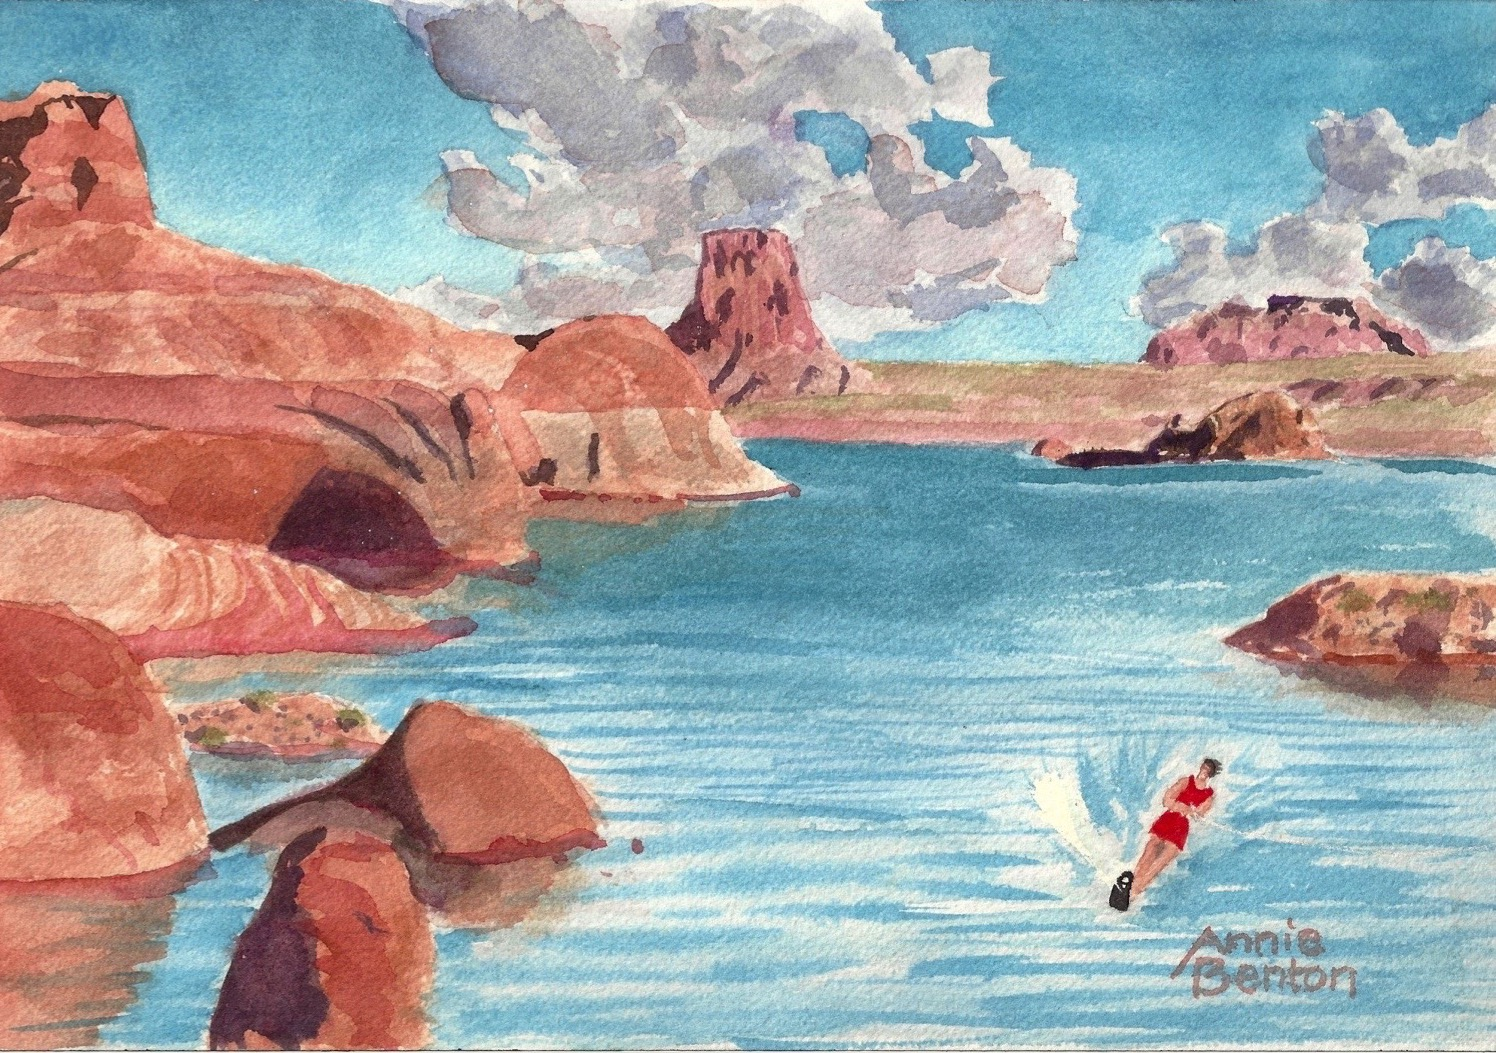 Roxanne Darling, Lake Powell Splash, watercolor, 10x7